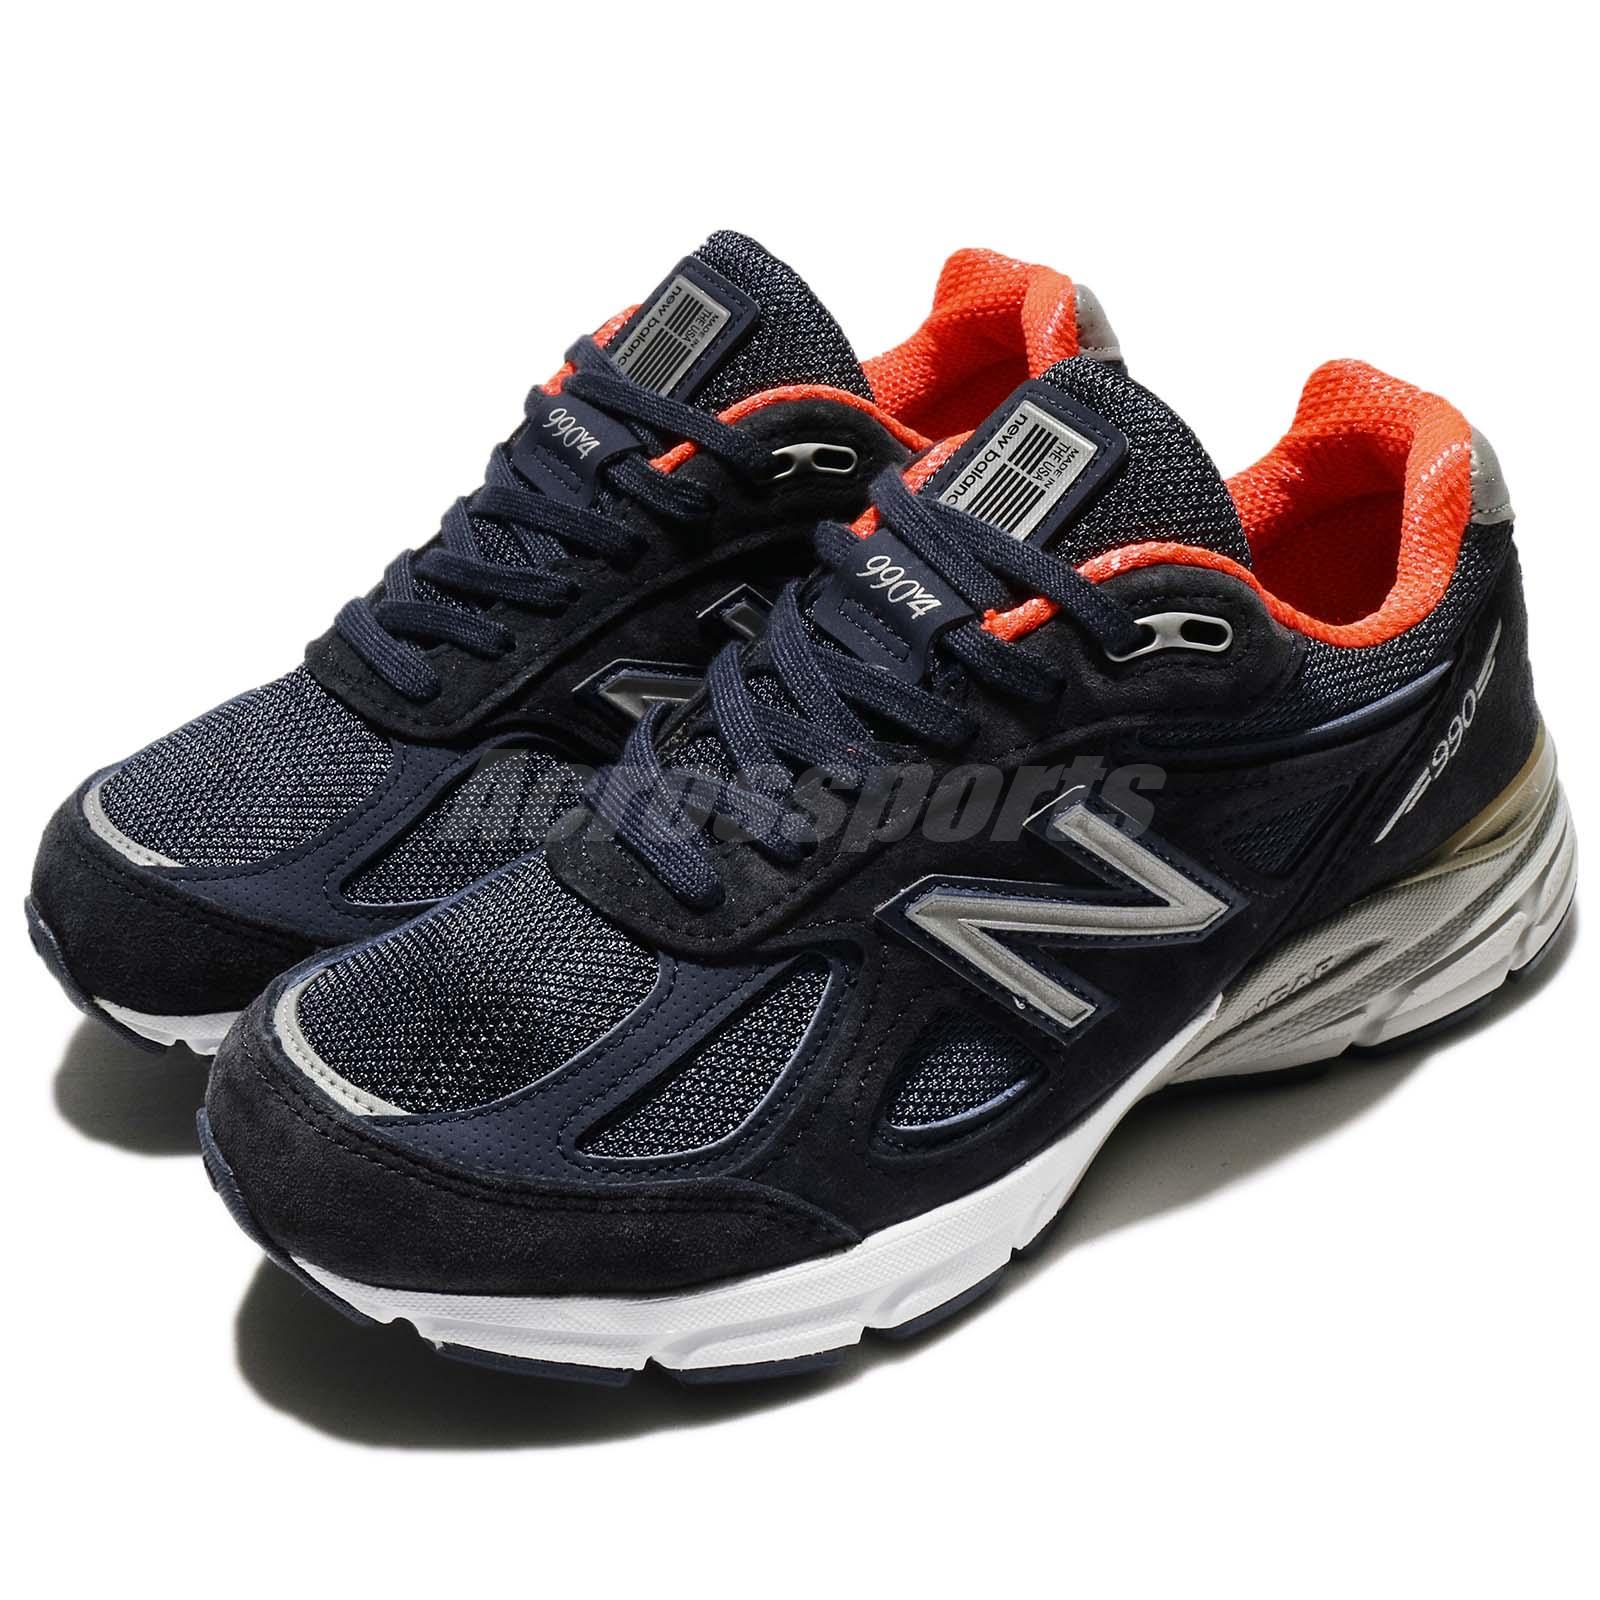 7503744defe11 Details about New Balance W990NV4 D Wide Blue White Made In USA Women  Running Shoes W990NV4D